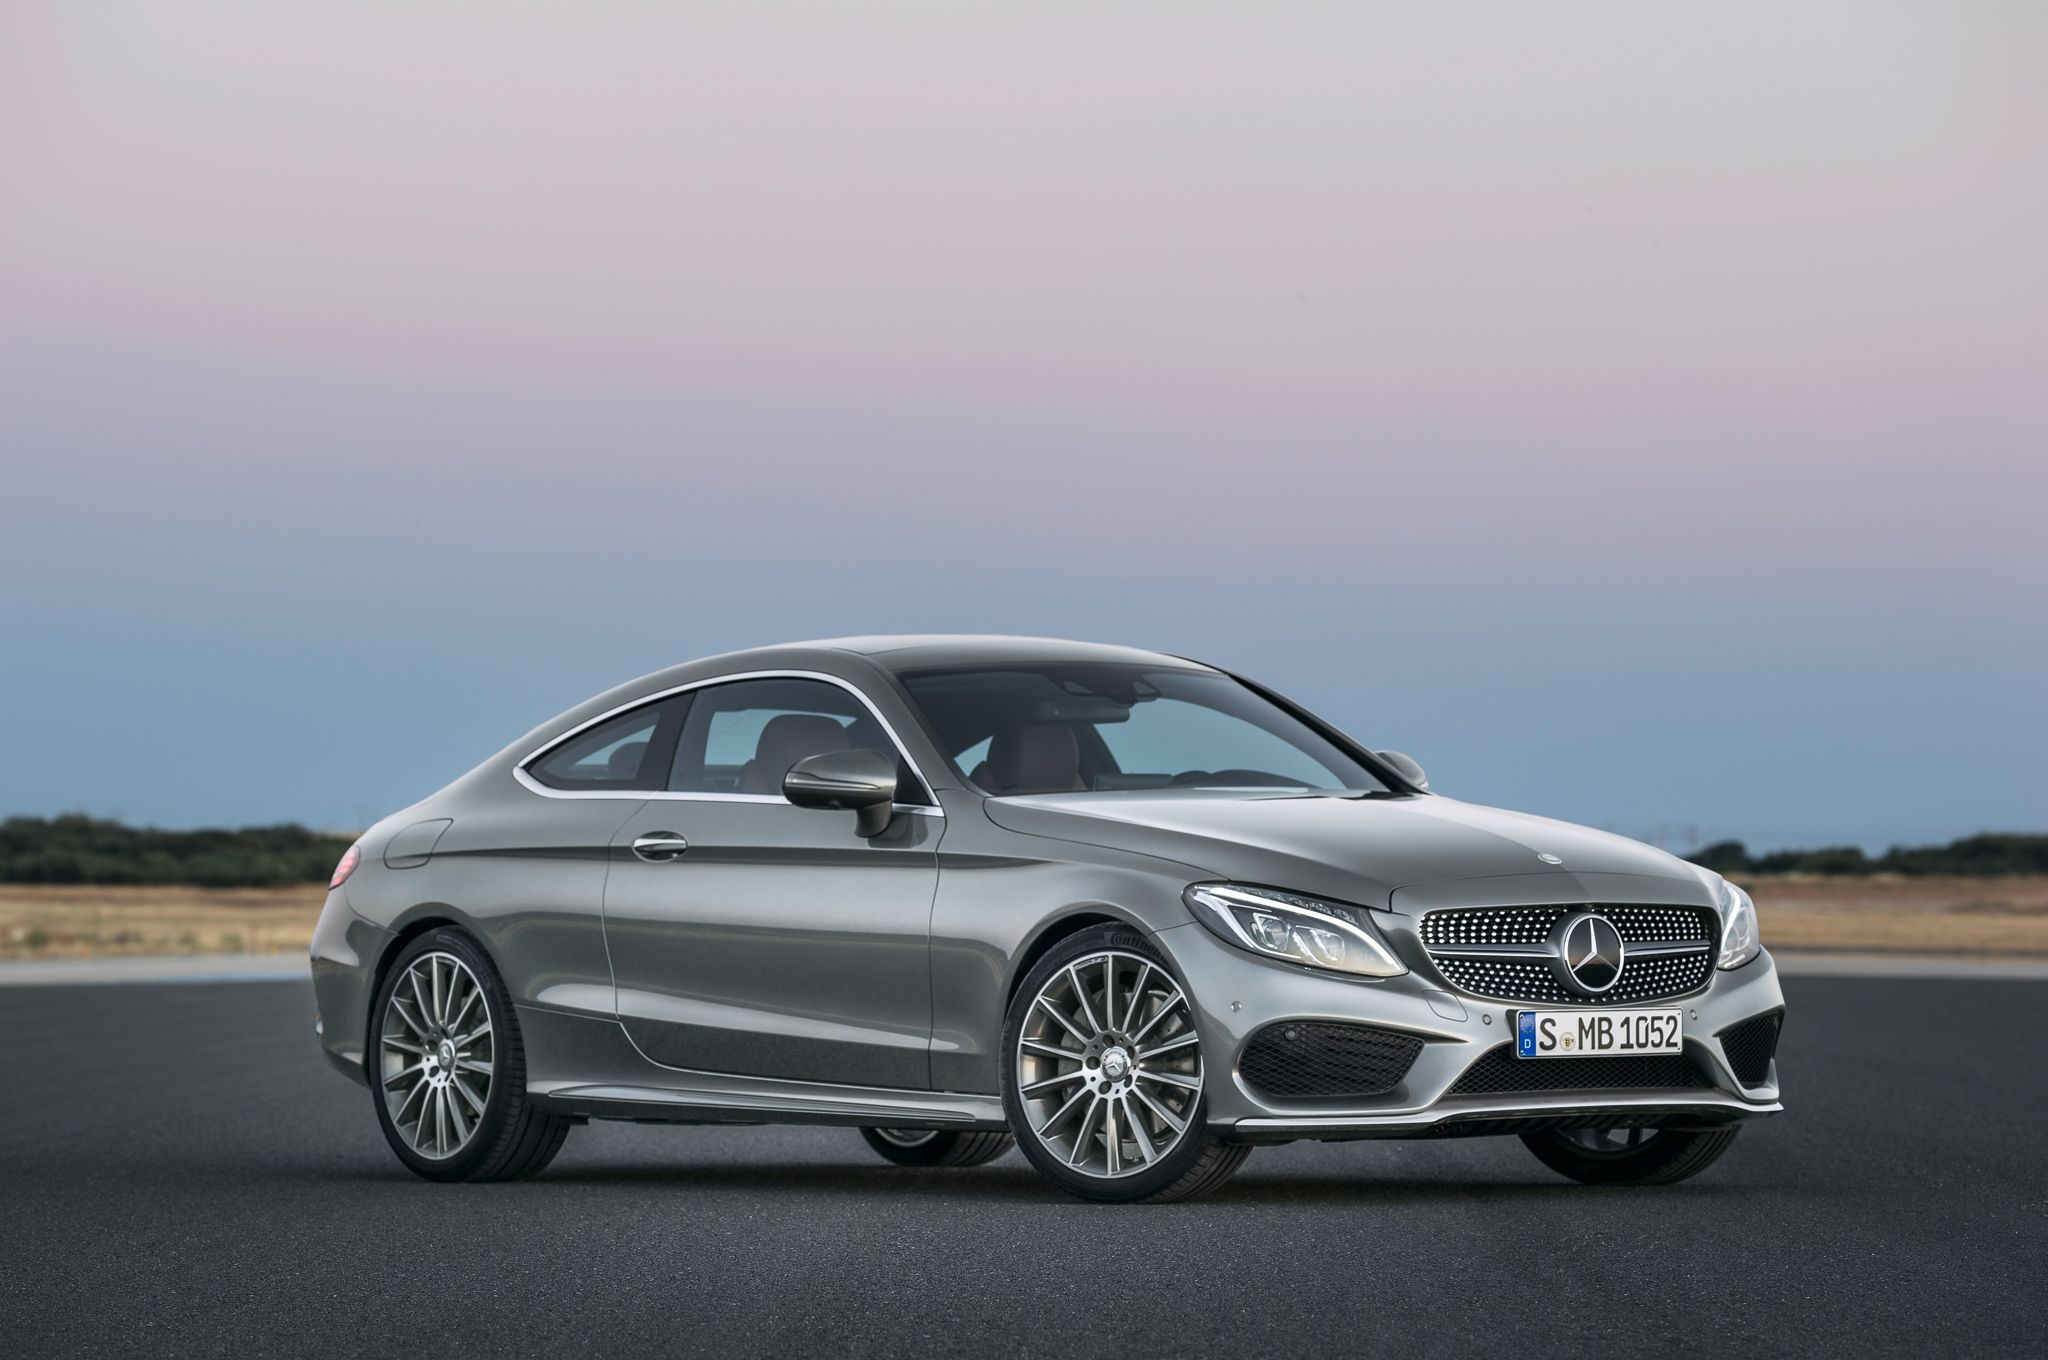 2017 Mercedes Benz C300 Coupe Debuts With Fabulous Two Door Design